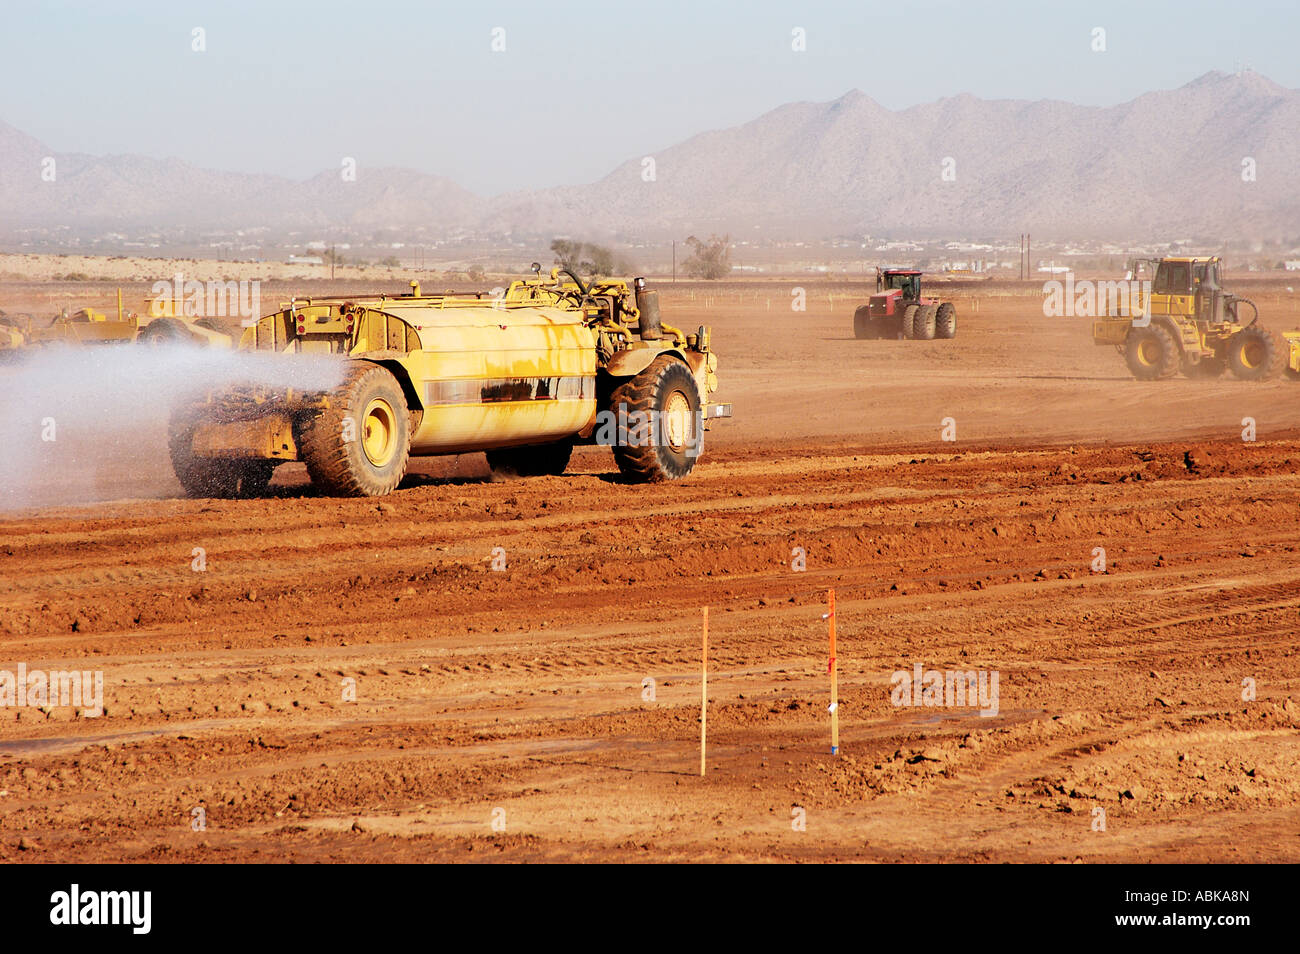 Dust control at a construction site in arizona stock photo royalty free image 12914372 alamy for Construction interior dust control